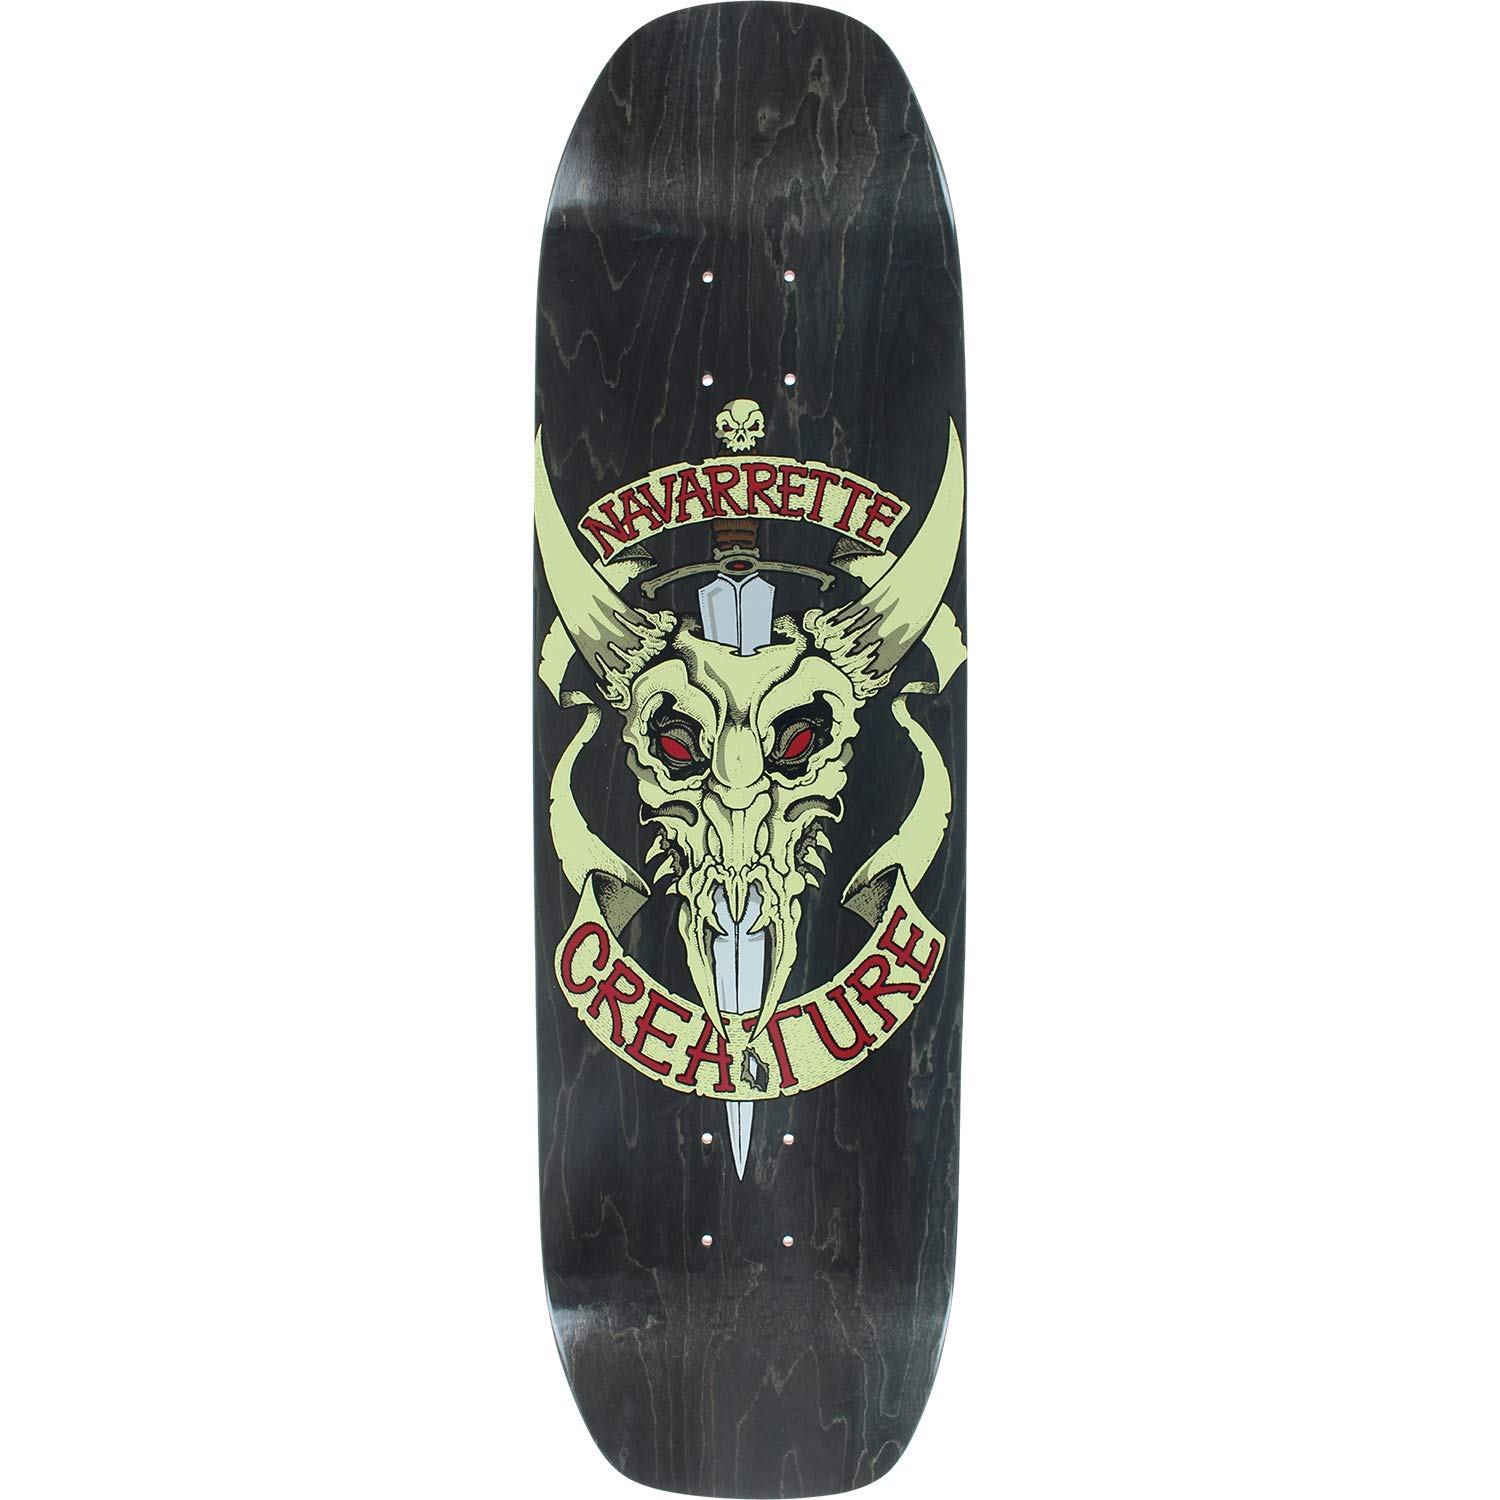 382f80c7 Amazon.com : Creature Navarrette Cowskull Skateboard Deck - 8.8 Deck -  Assembled AS Complete Skateboard : Sports & Outdoors